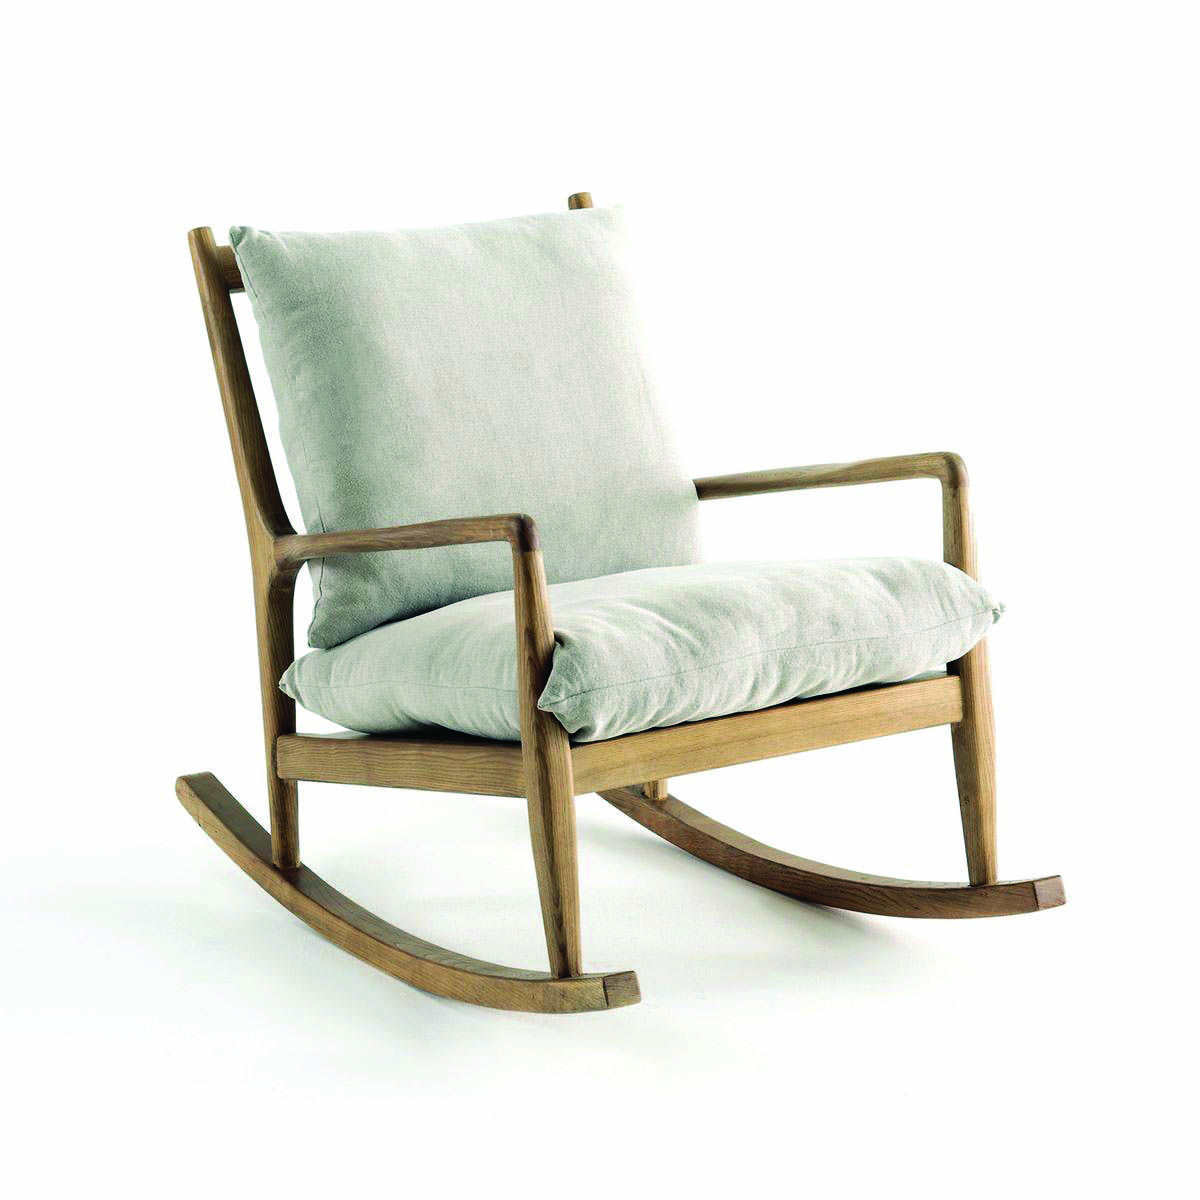 Rocking Chair Exterieur Idees